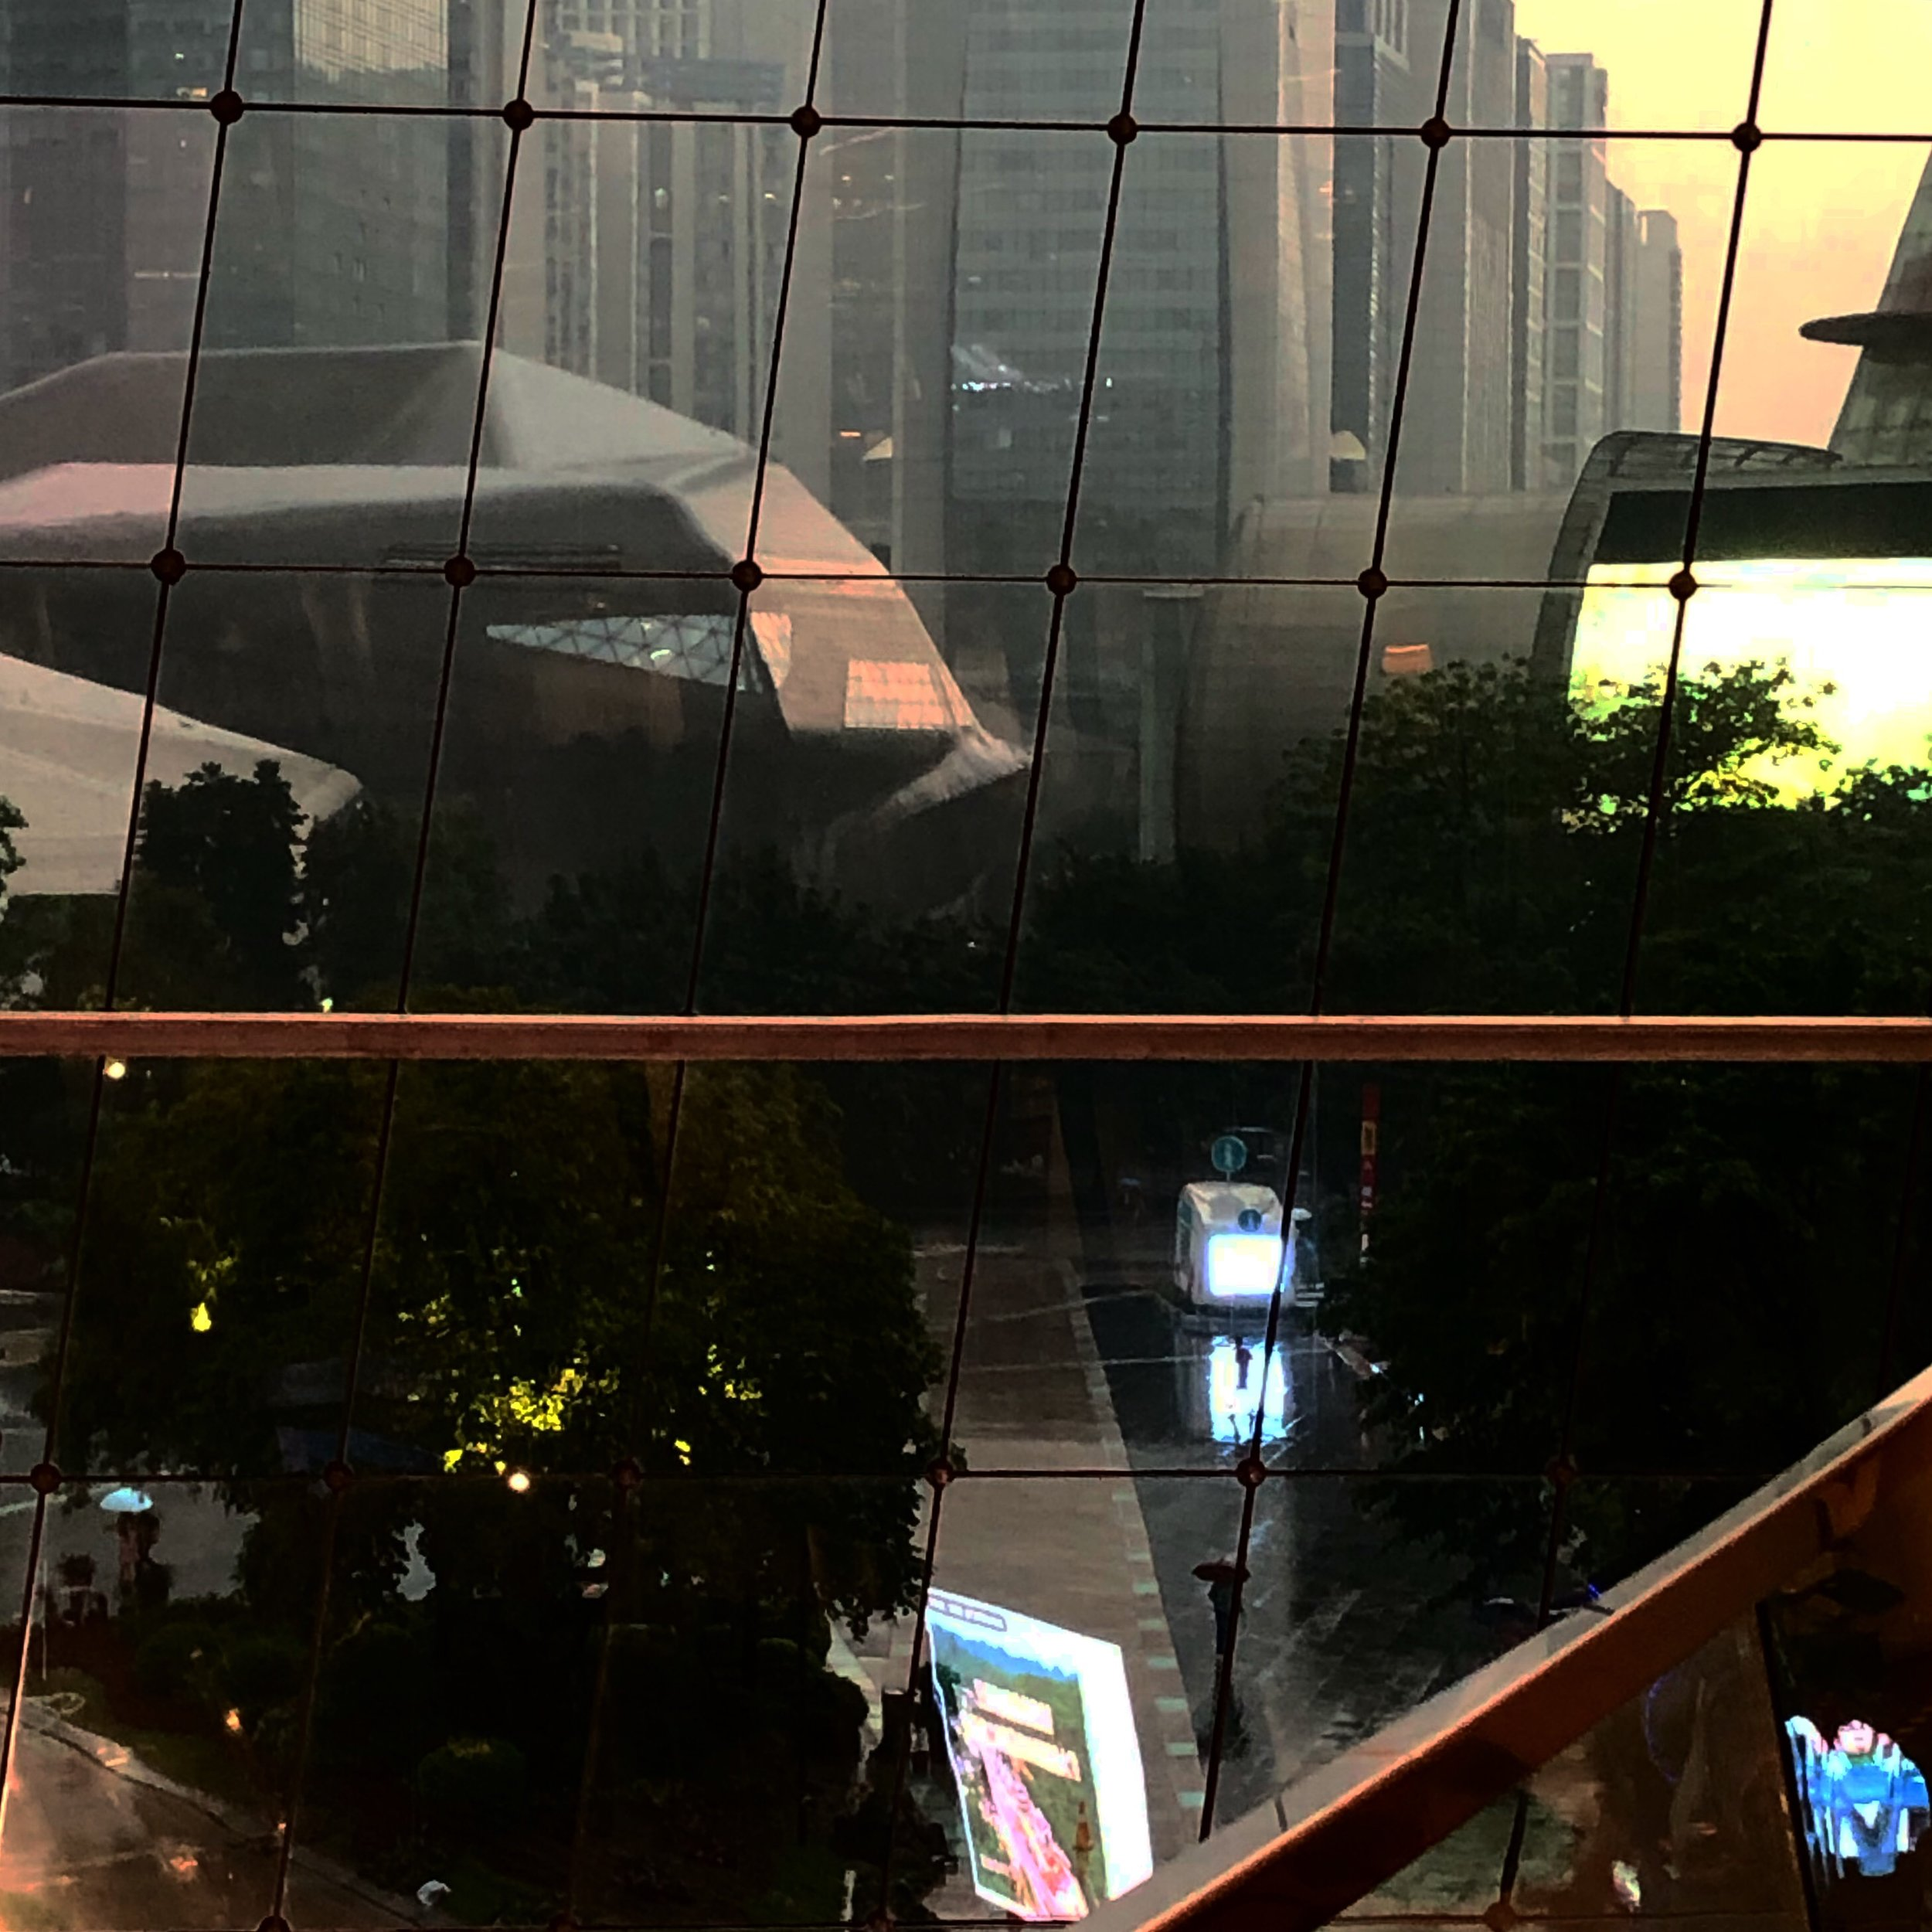 View of Zaha Hadid's Opera House (on the left) and its backdrop from the 3rd floor of the Guangzhou Library in Zhujiang New Town — a newly developed area in Guangzhou, China.